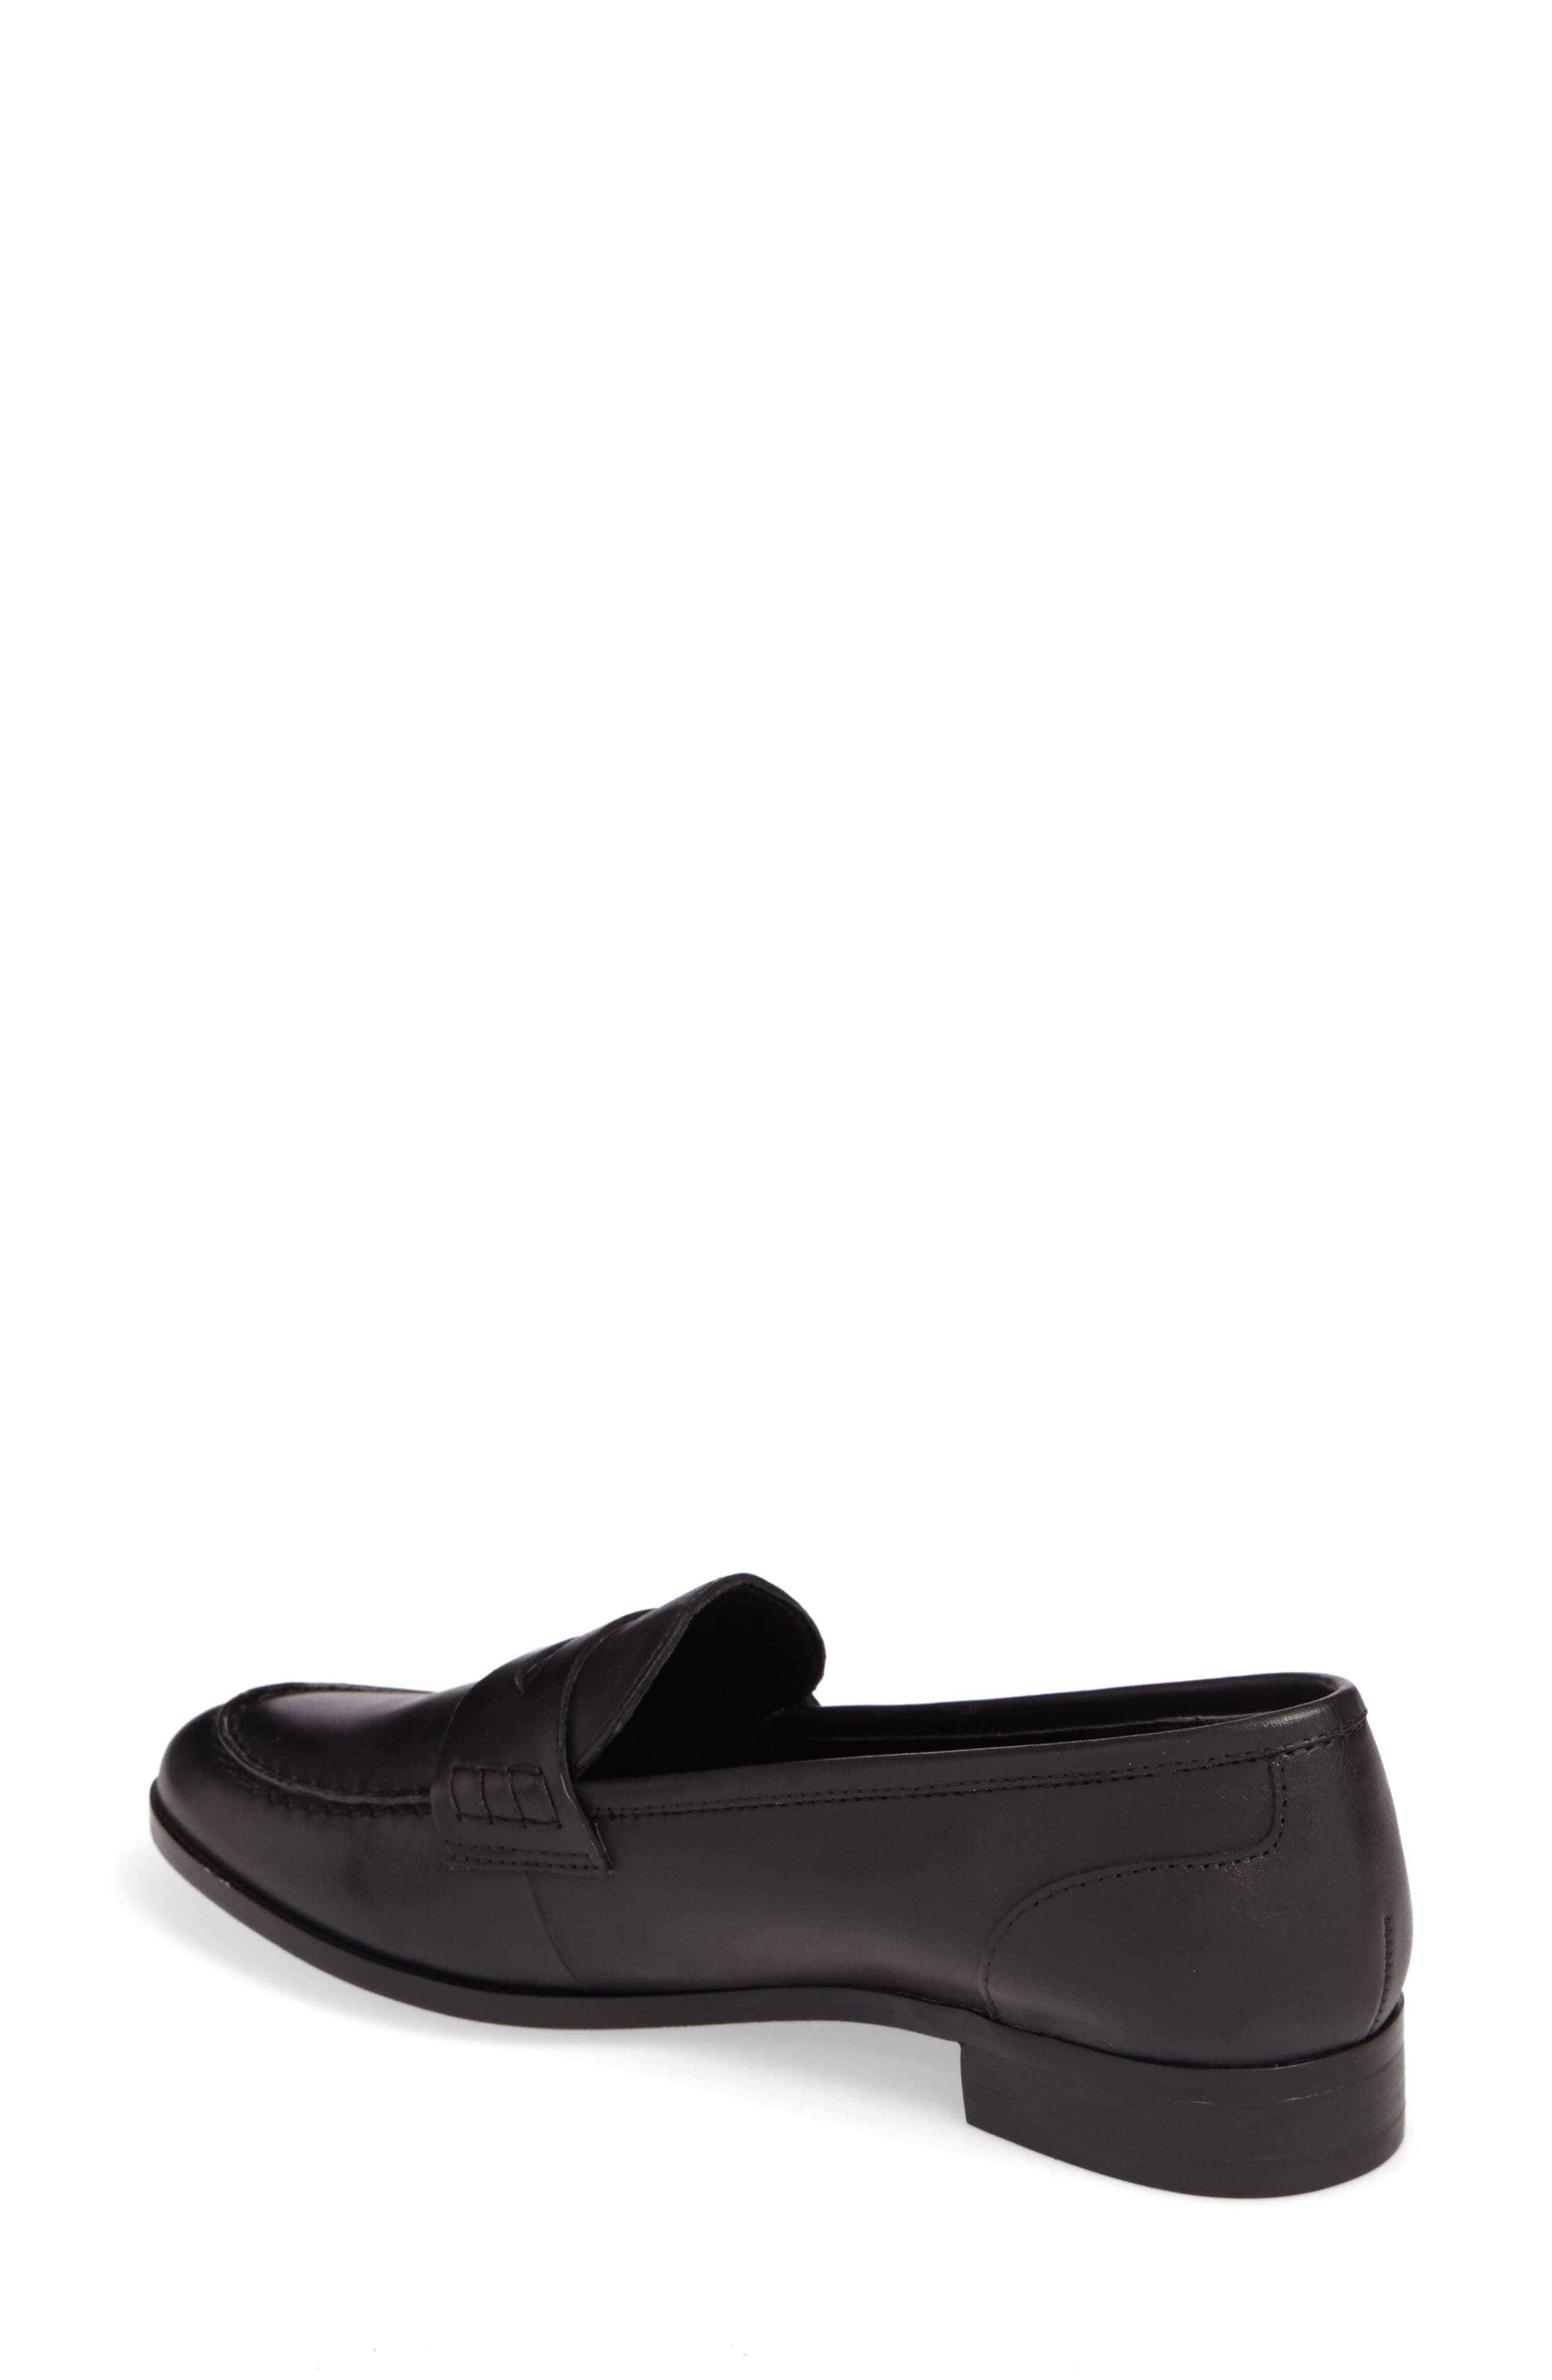 Georgie Penny Loafer,                             Alternate thumbnail 2, color,                             001